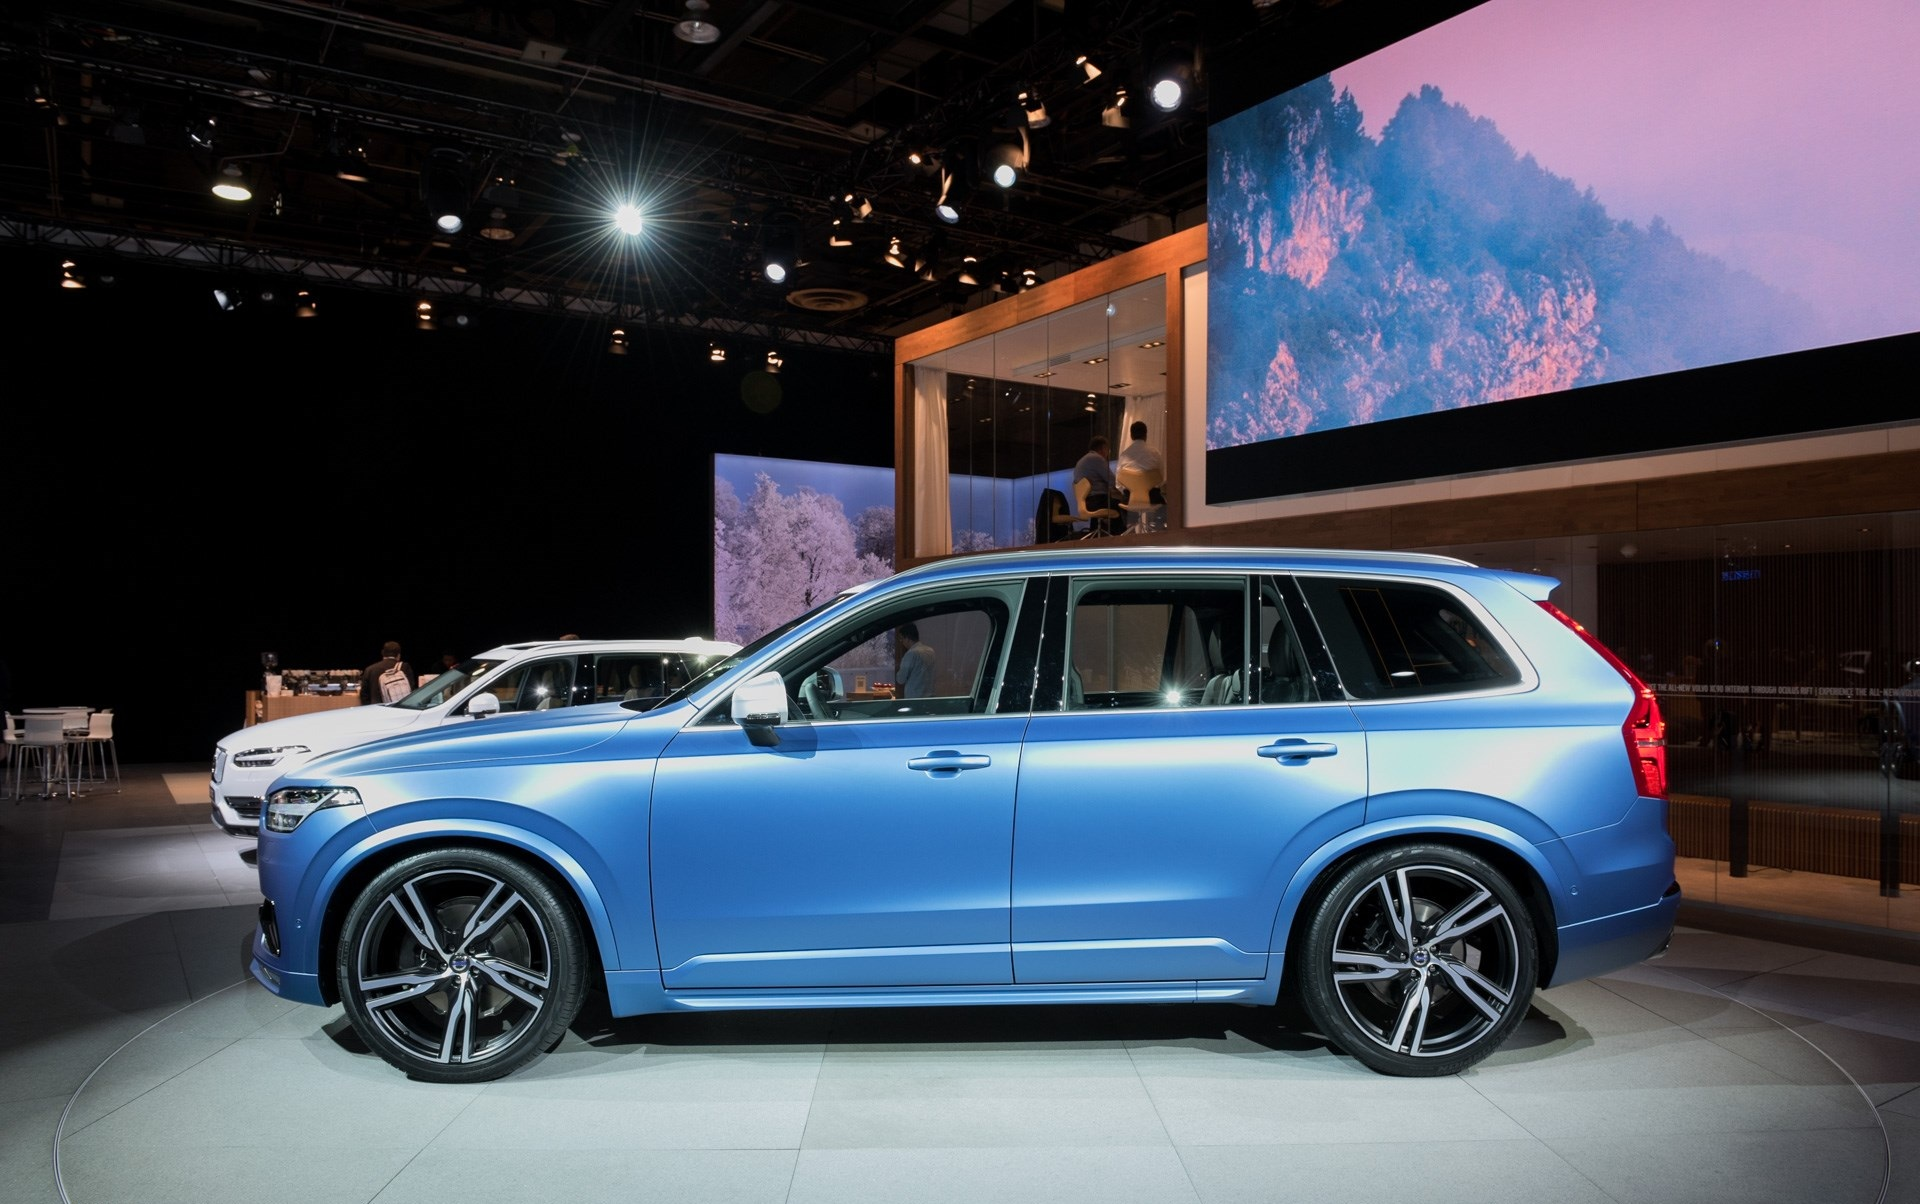 2016 Volvo Xc90 R Design Left Side Photo (Photo 3 of 18)